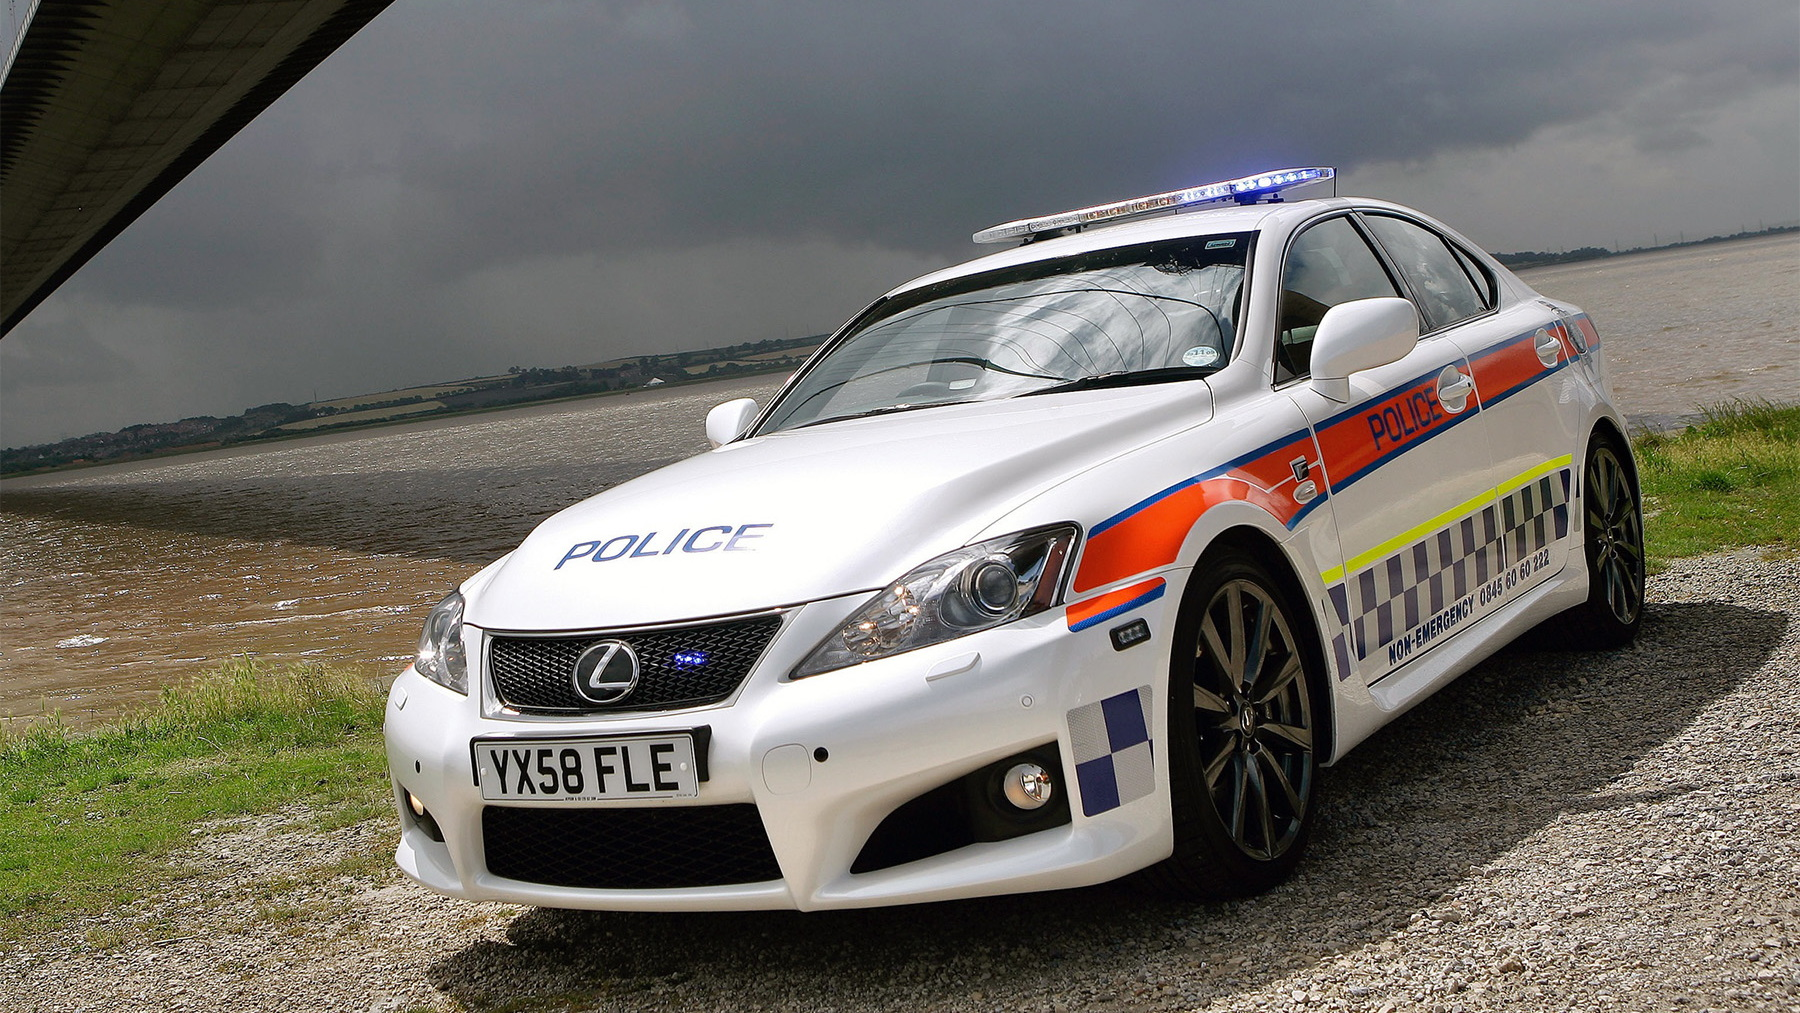 2009 lexus is f police car 003